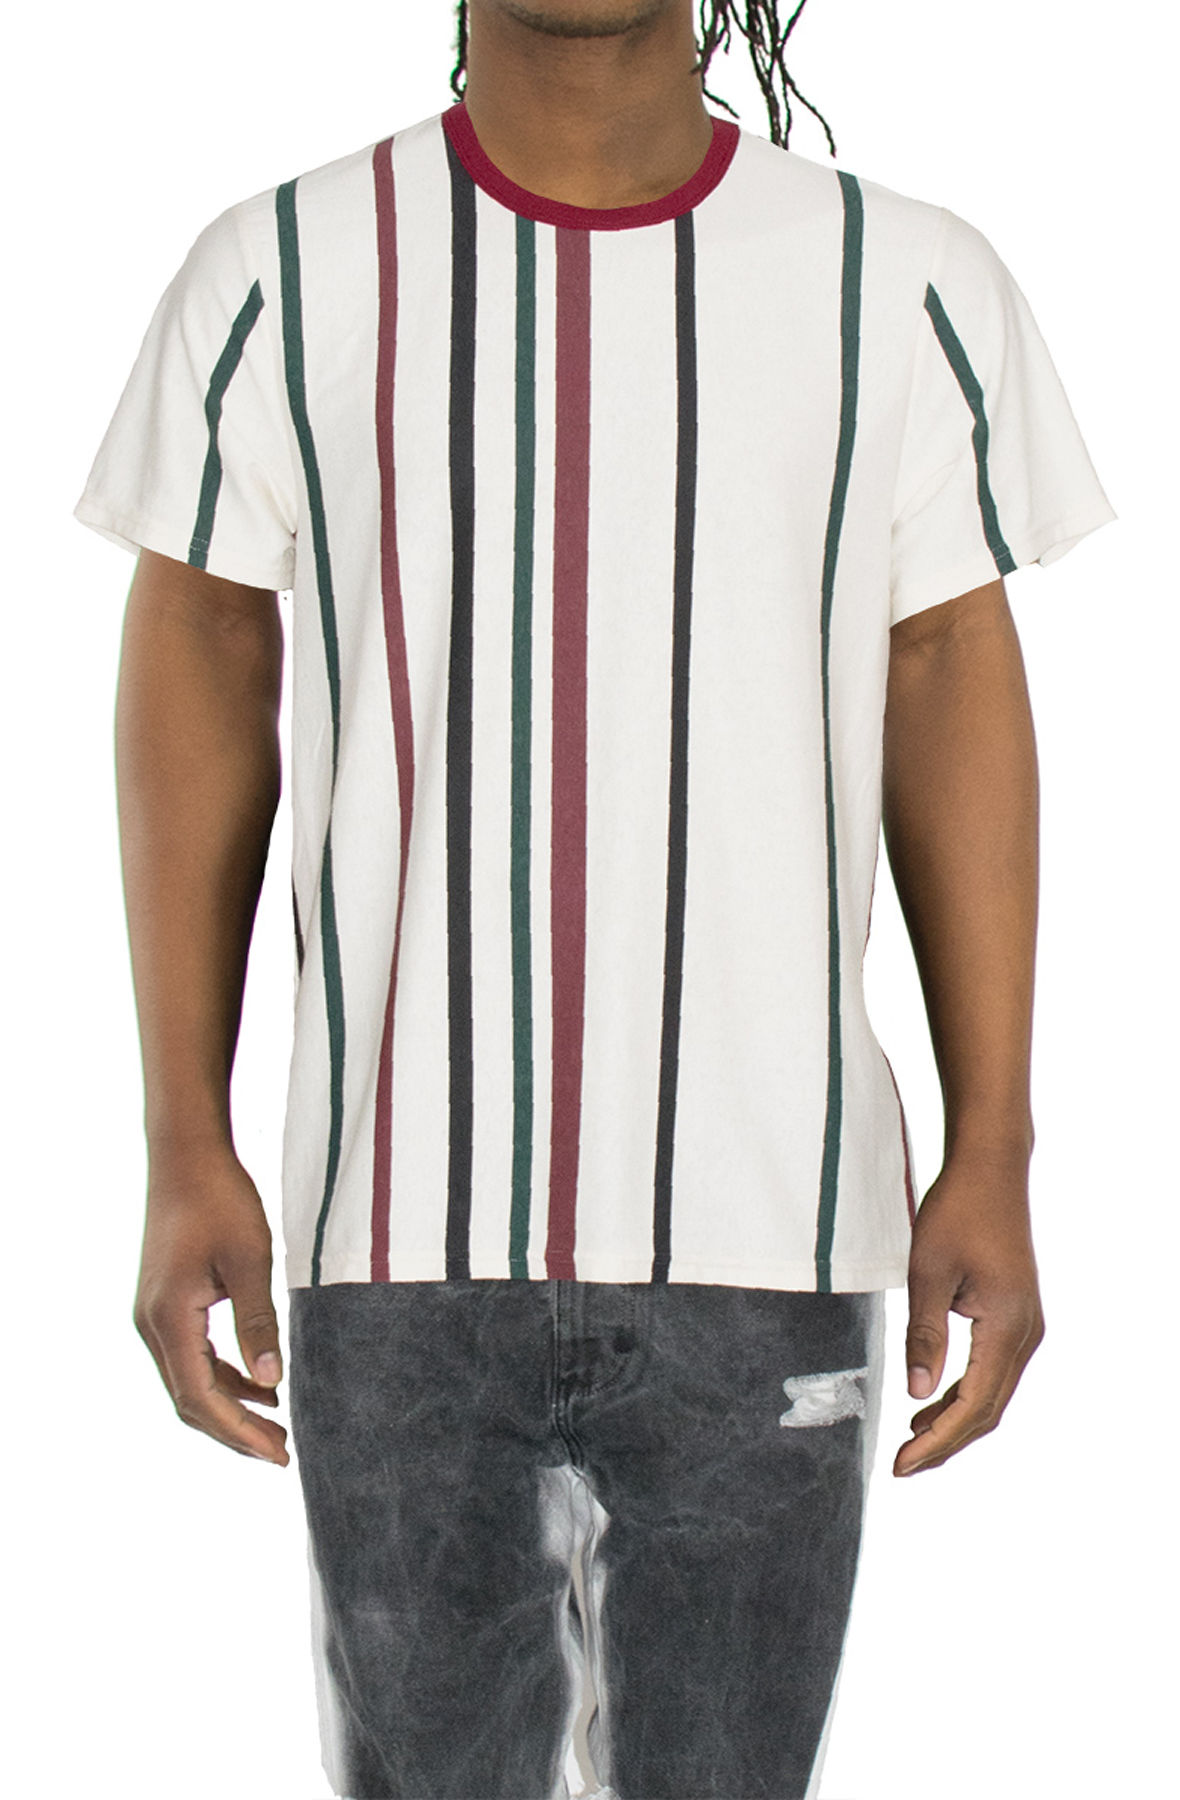 Image of The Burgundy Multi Stripe Short Sleeve Tee in Natural